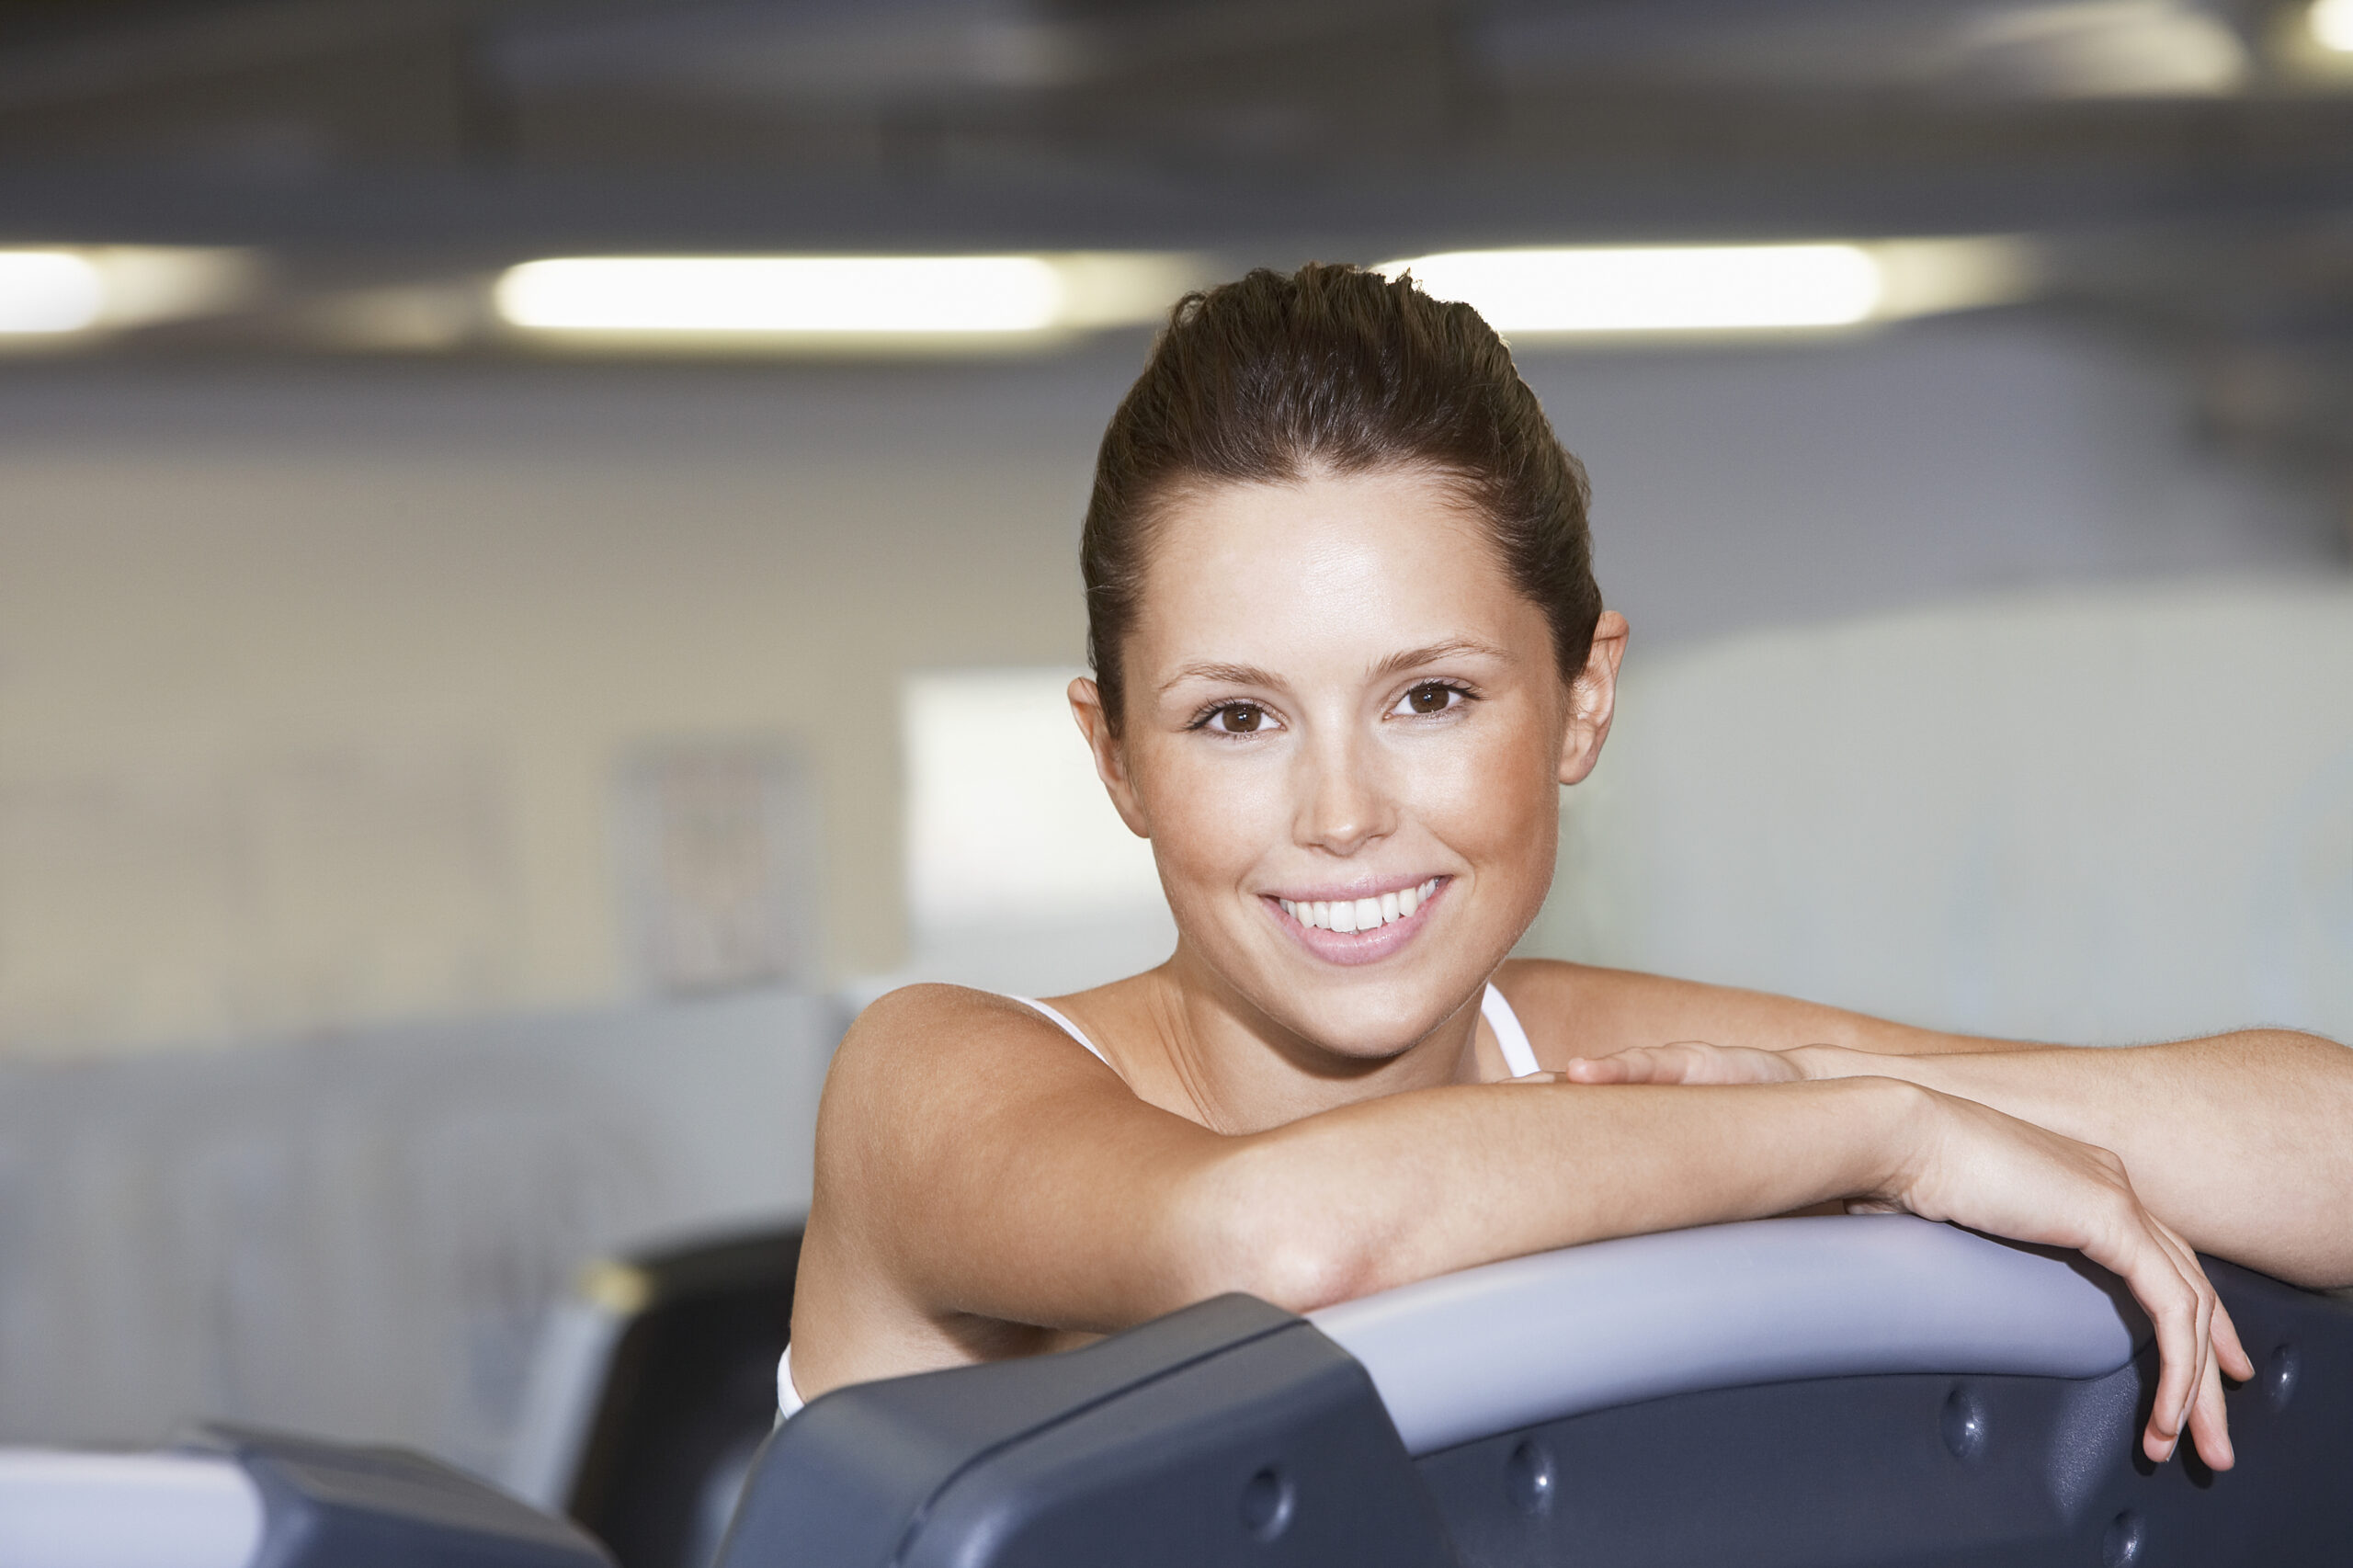 cape-cod-new-years-resolutions-gym